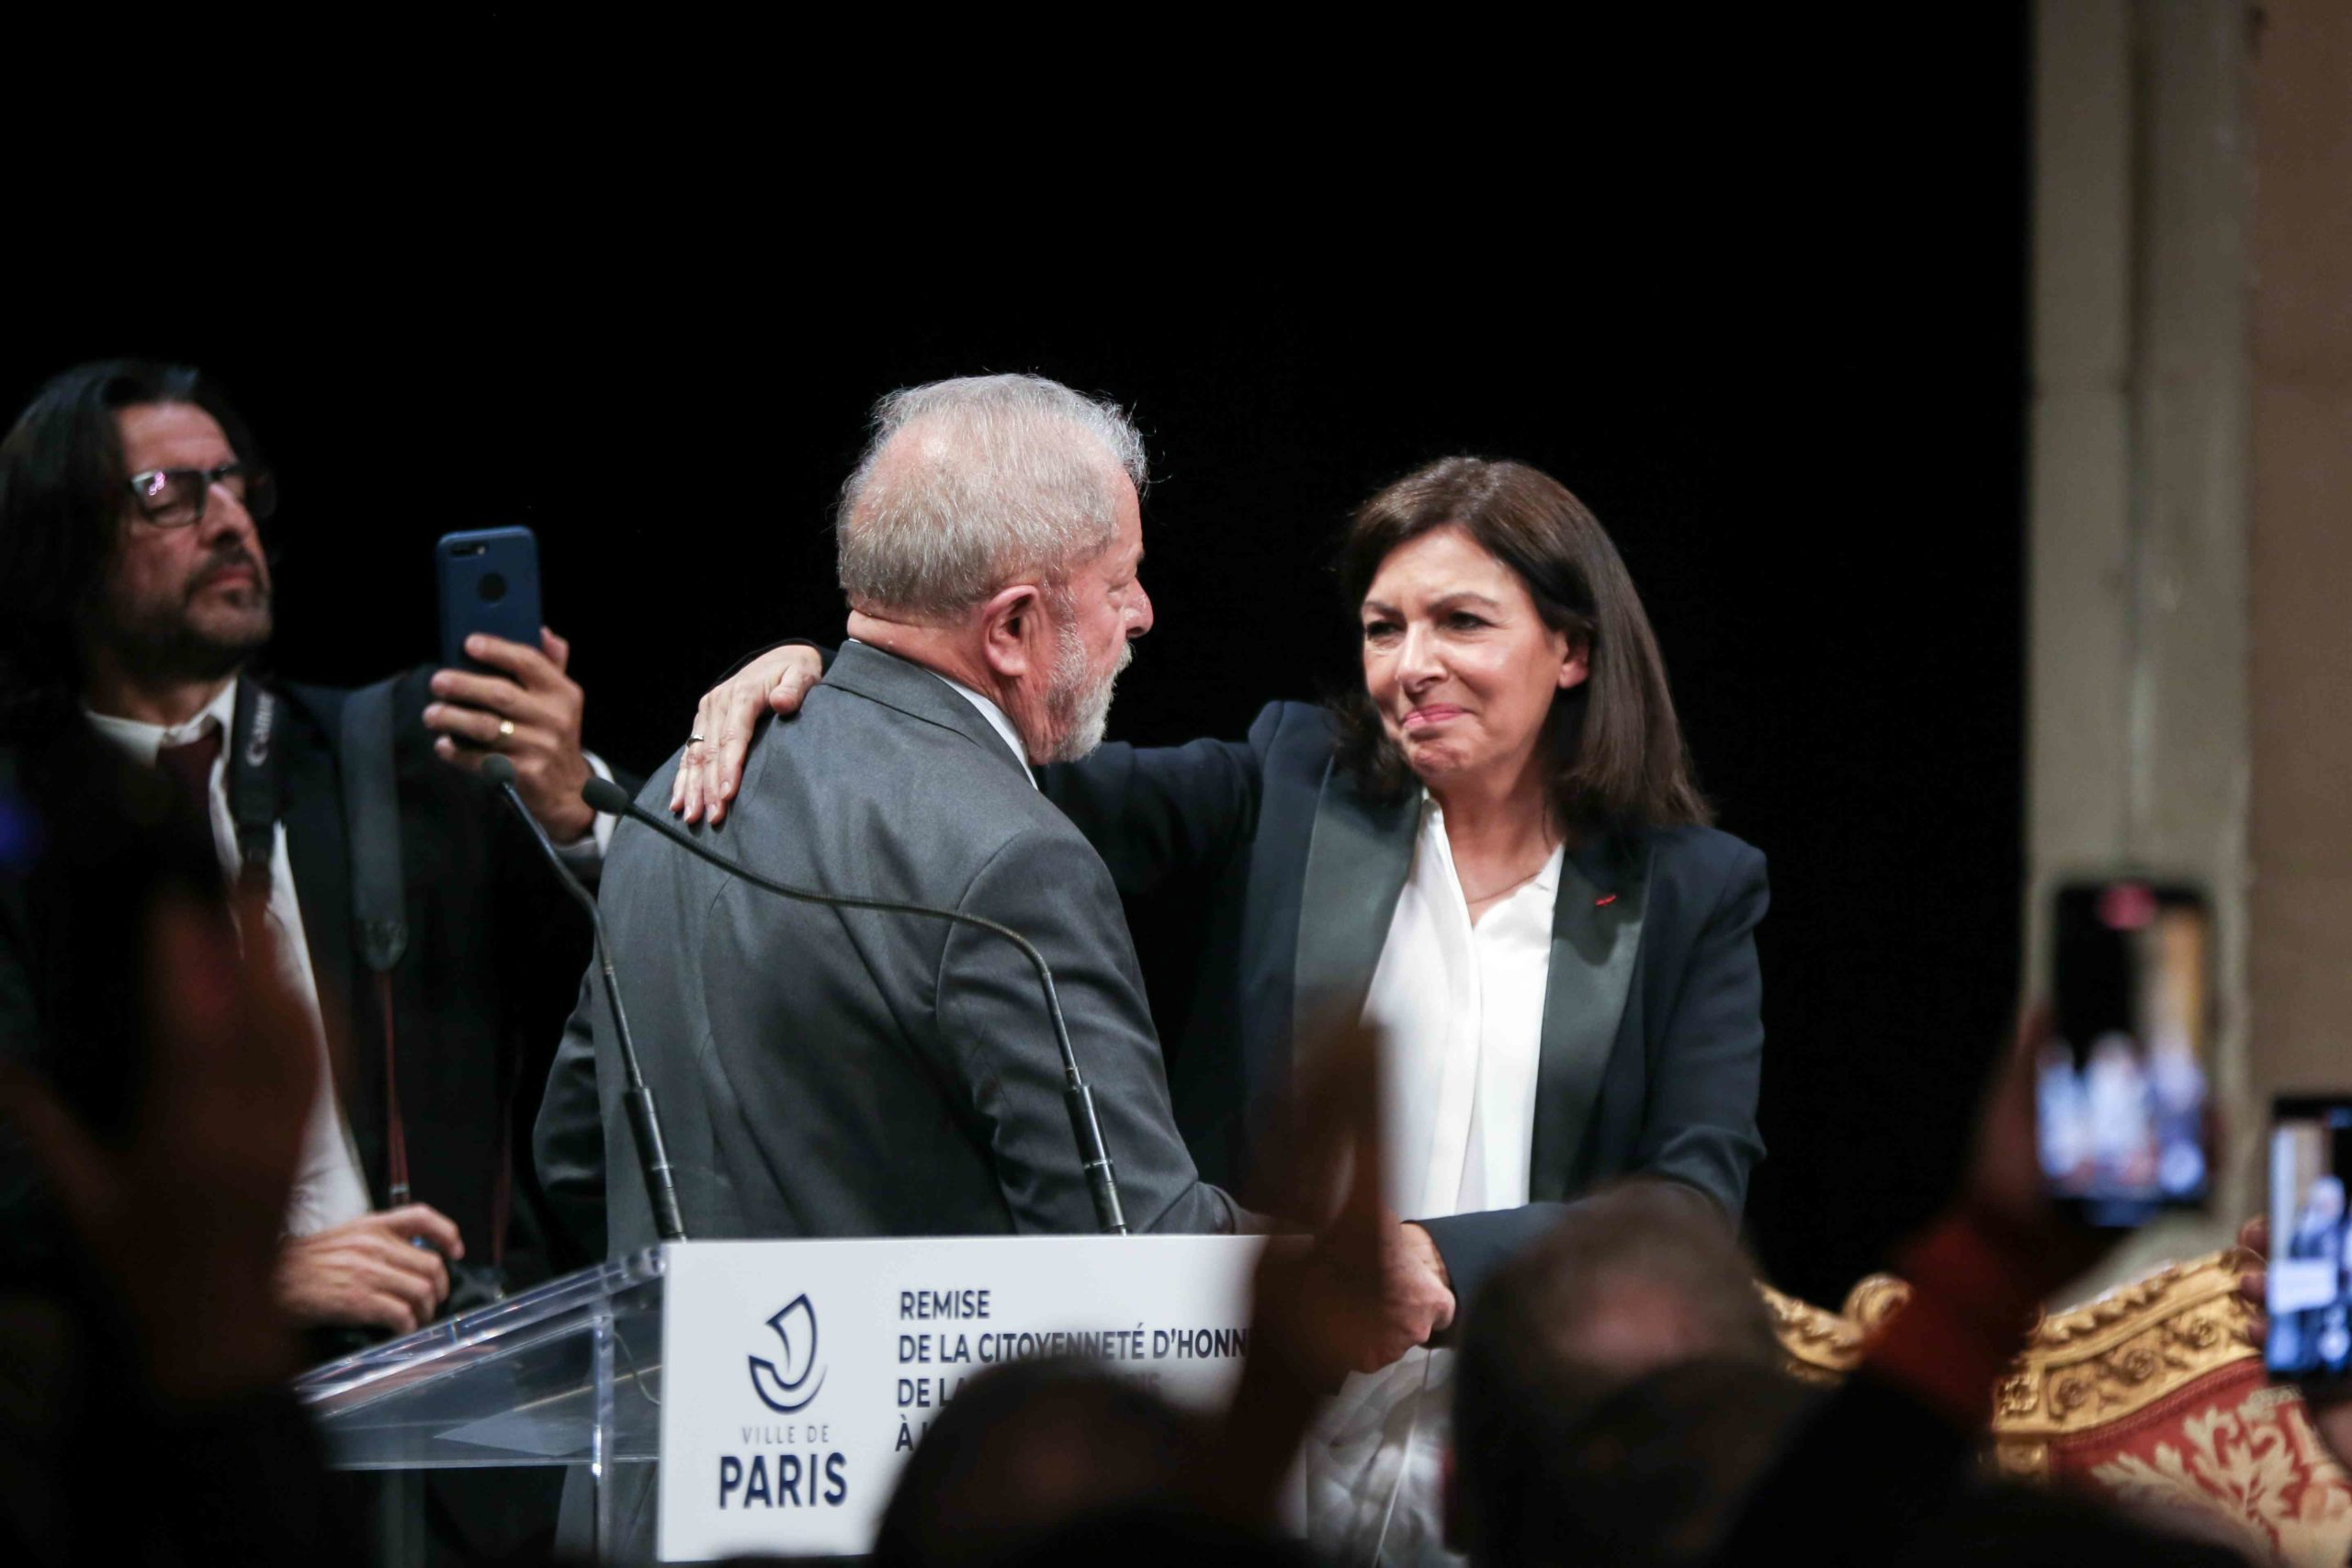 Former Brazilian president Luiz Inacio Lula da Silva (CL) is congratulated by Paris Mayor (CR) and candidate for re-election Anne Hidalgo during a ceremony at the City Hall of Paris, on March 2, 2020, during wich he was named  honorary citizen of the city